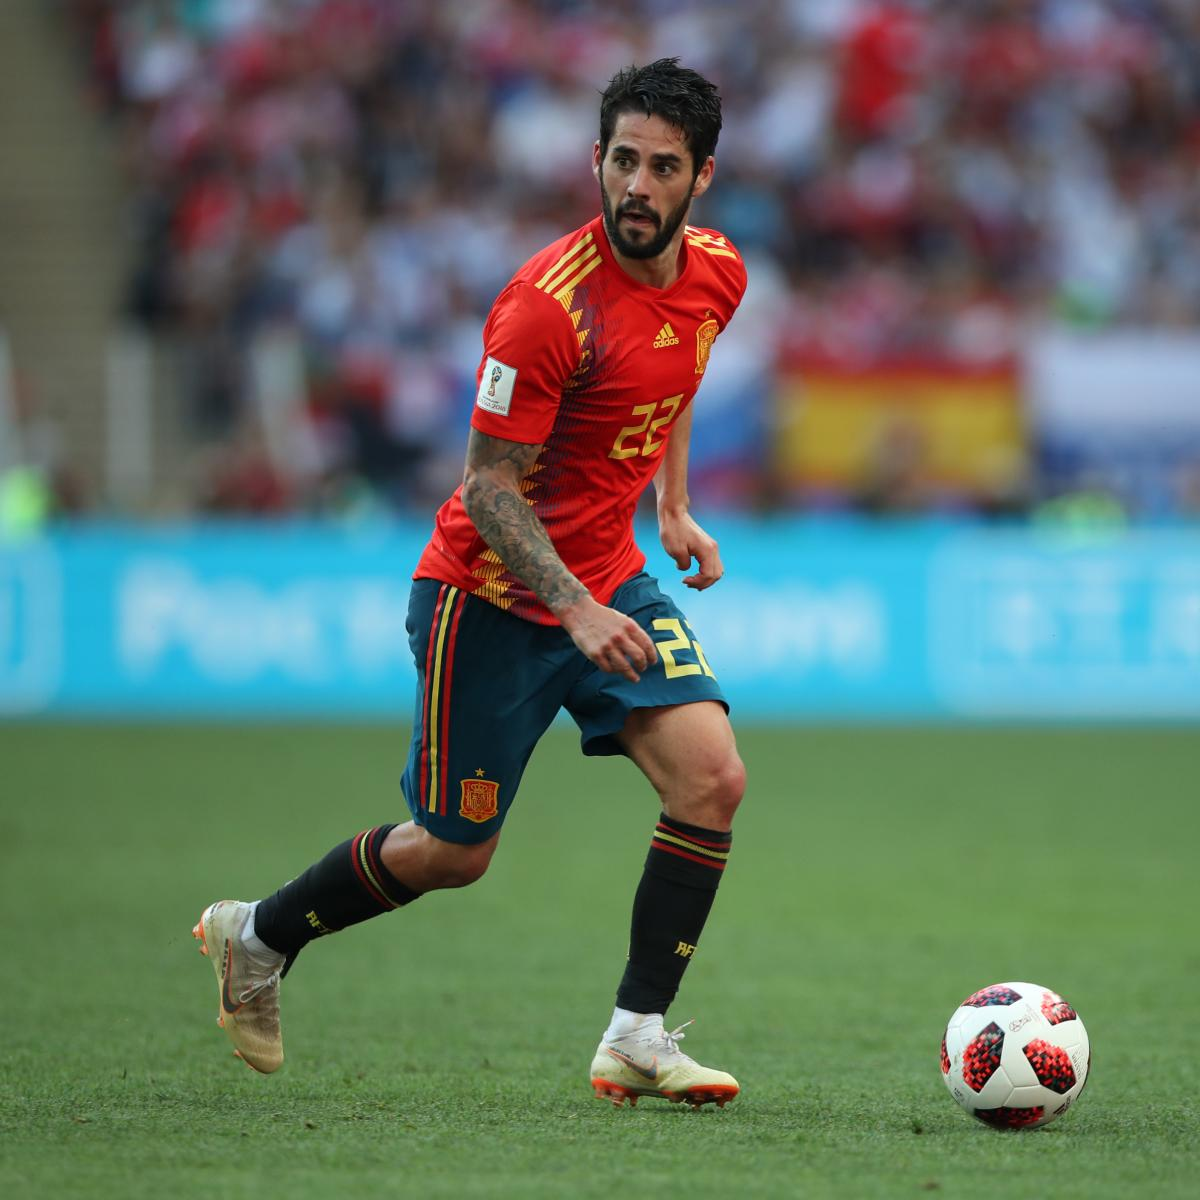 Luis Enrique Unsure over Isco Spain Call-Up Due to Lack of Real Madrid Minutes